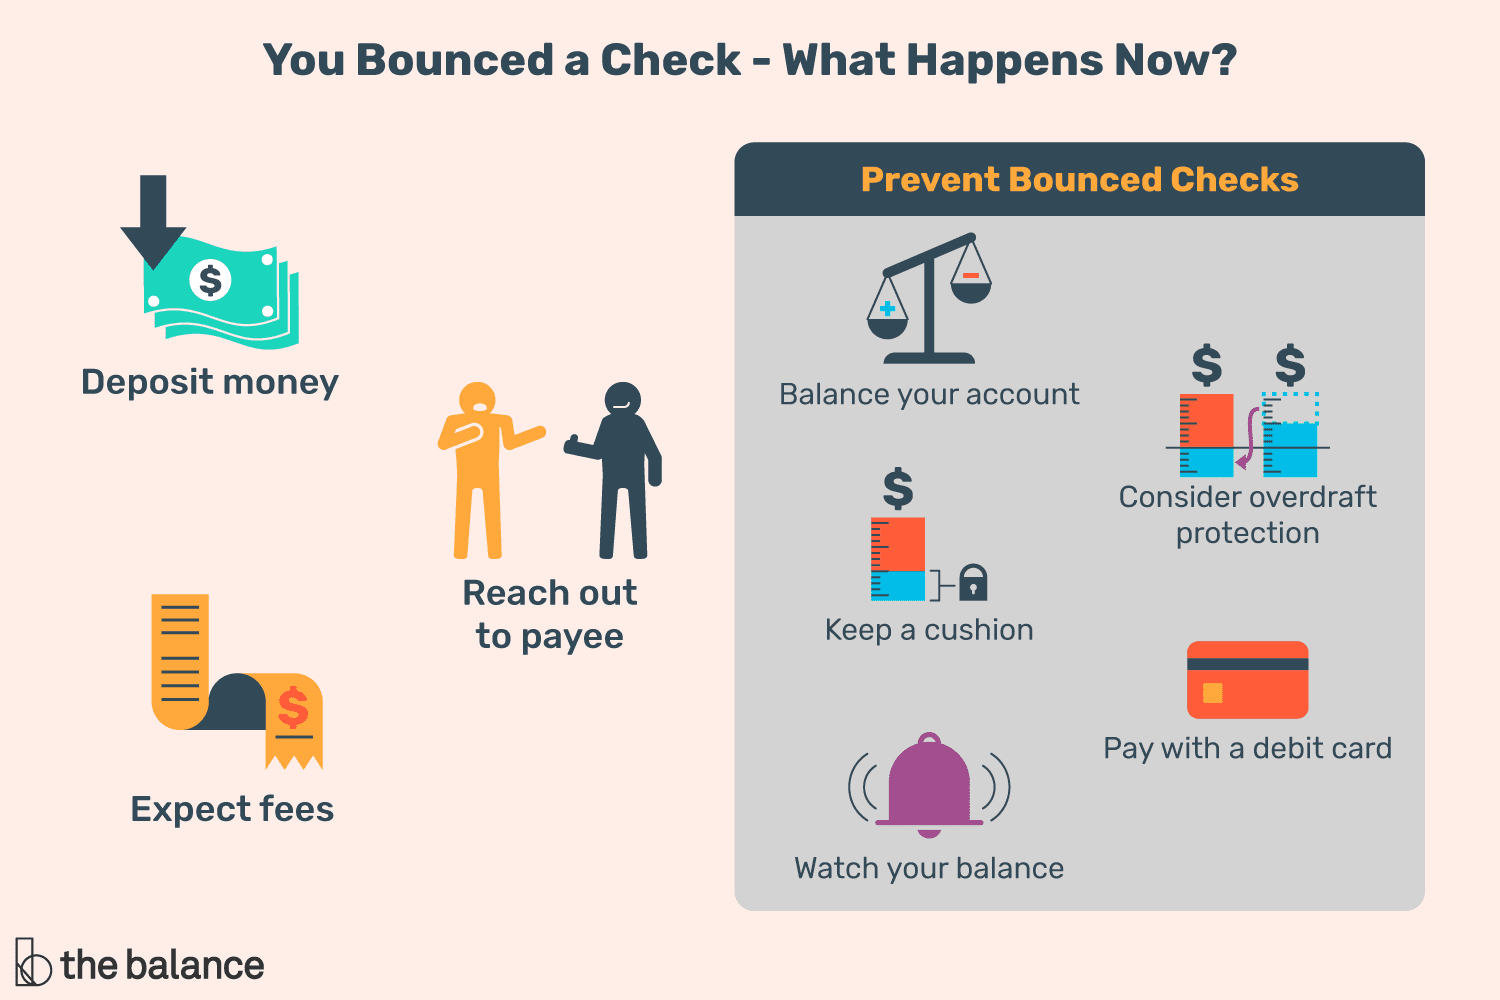 You Bounced a Check - What Happens Now?